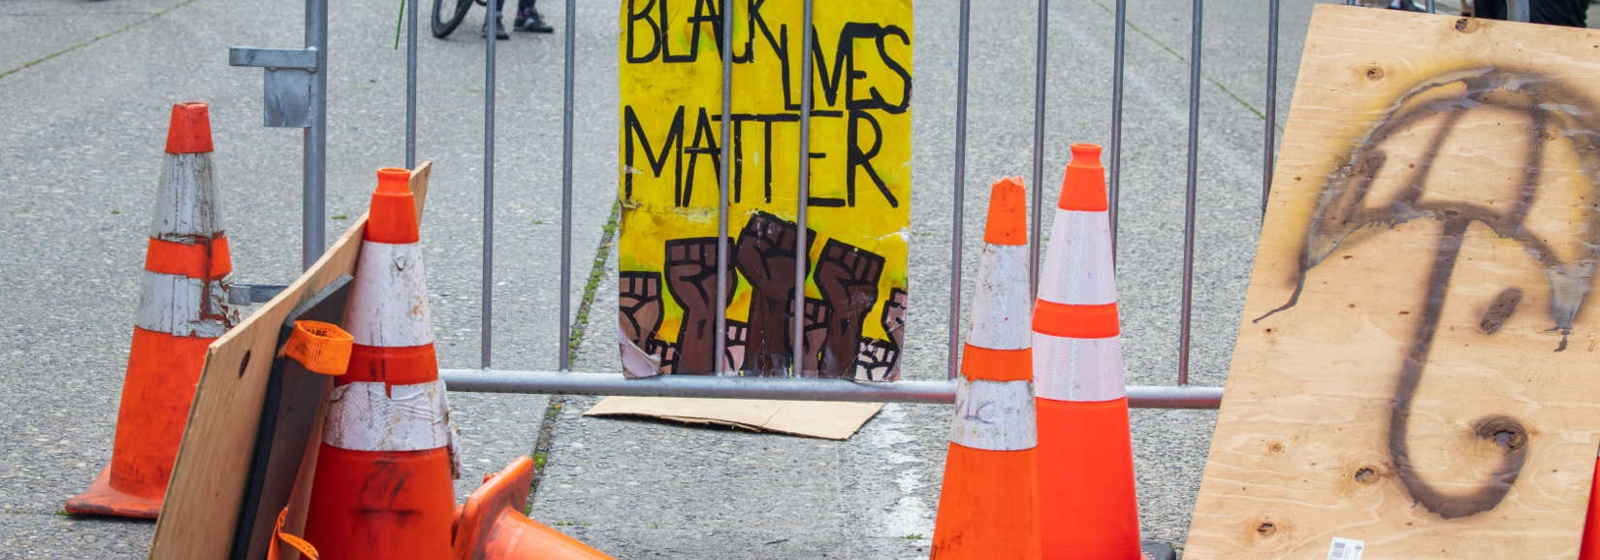 Seattle Uses Taxpayer Money to Provide Barrier to 'Autonomous Zone'